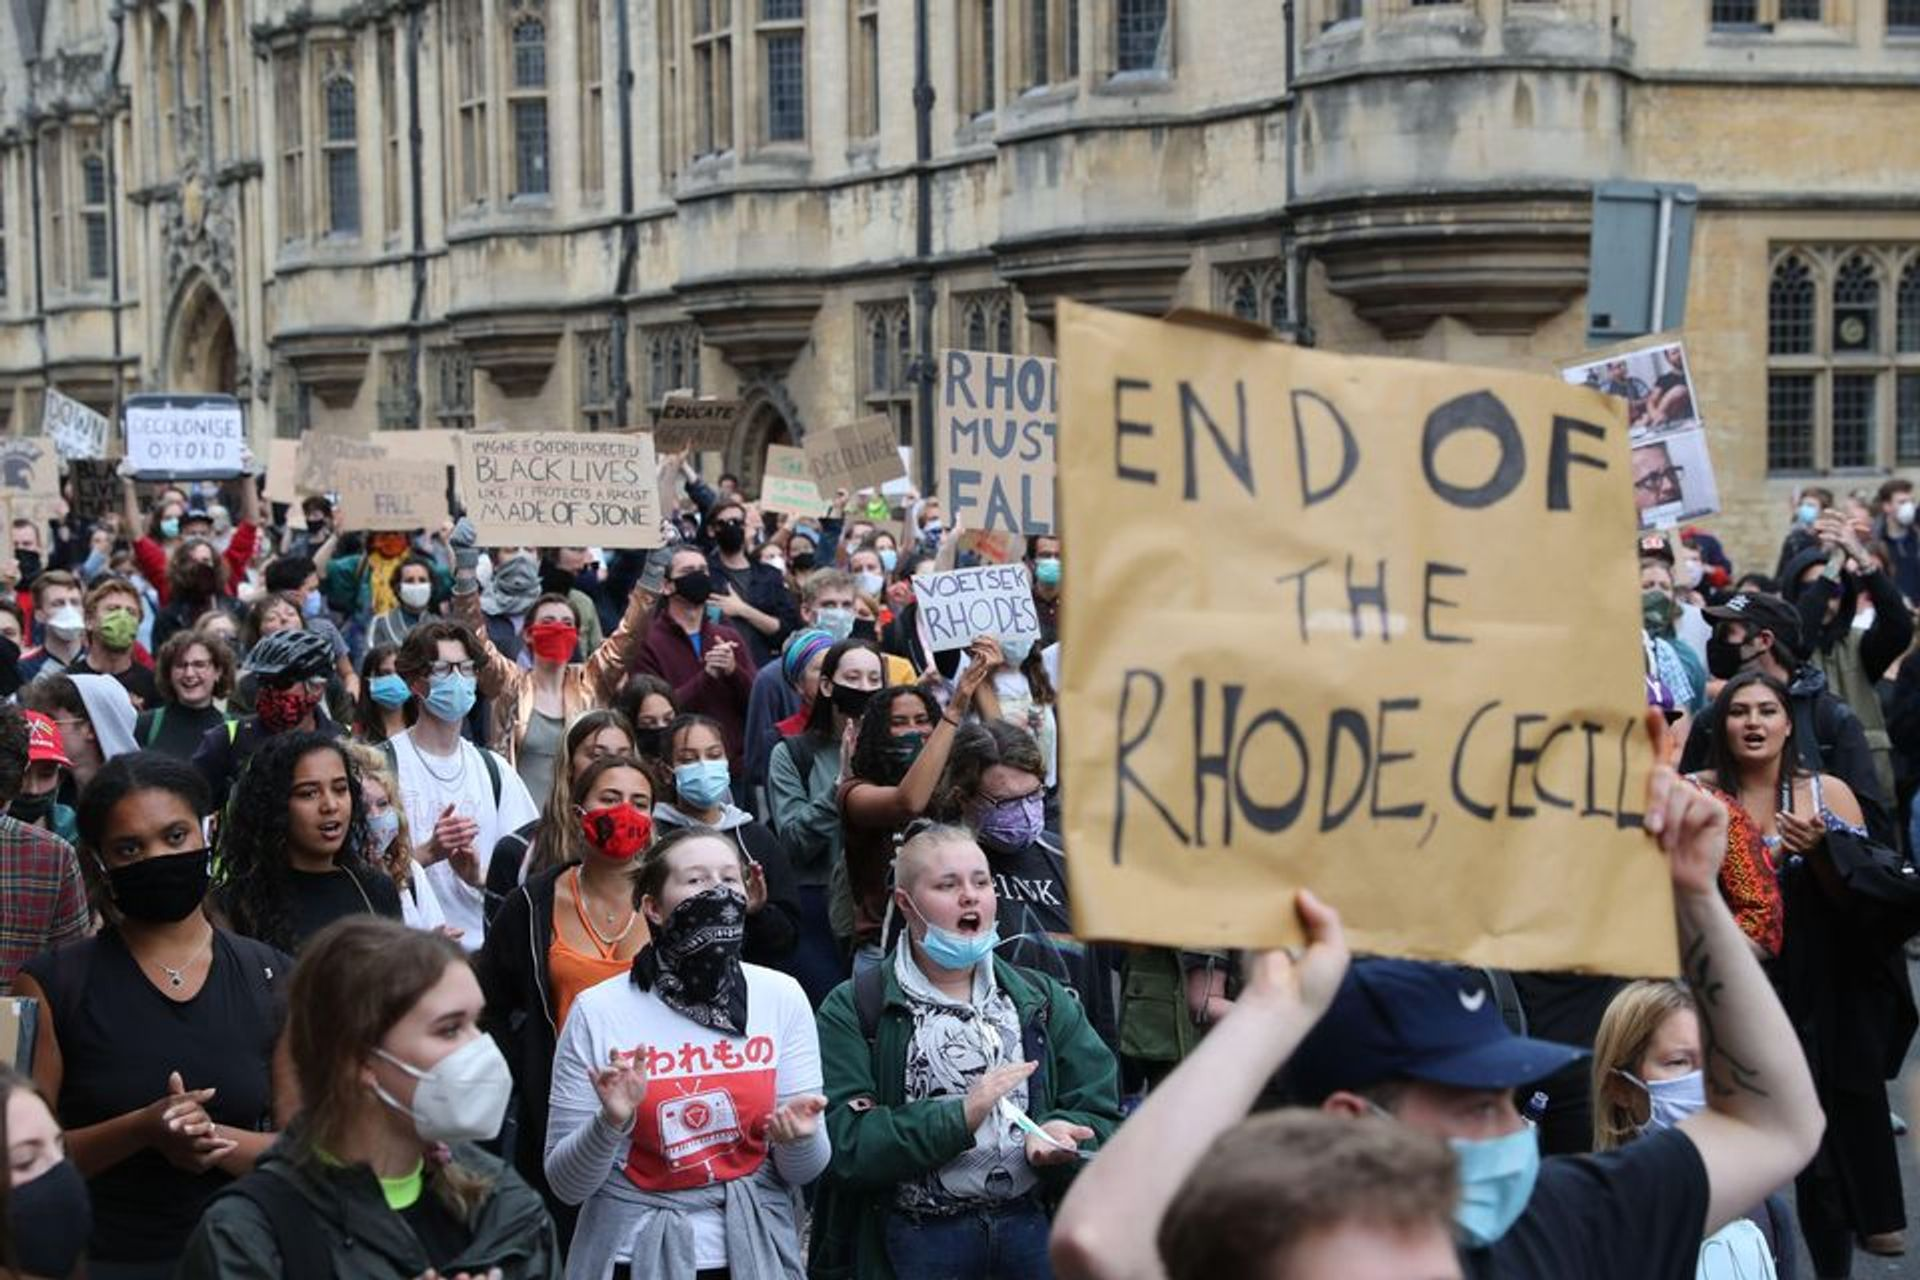 Protesters calling for the removal of the statue of 19th-century imperialist Cecil Rhodes from an Oxford college © PA Images / Alamy Stock Photo